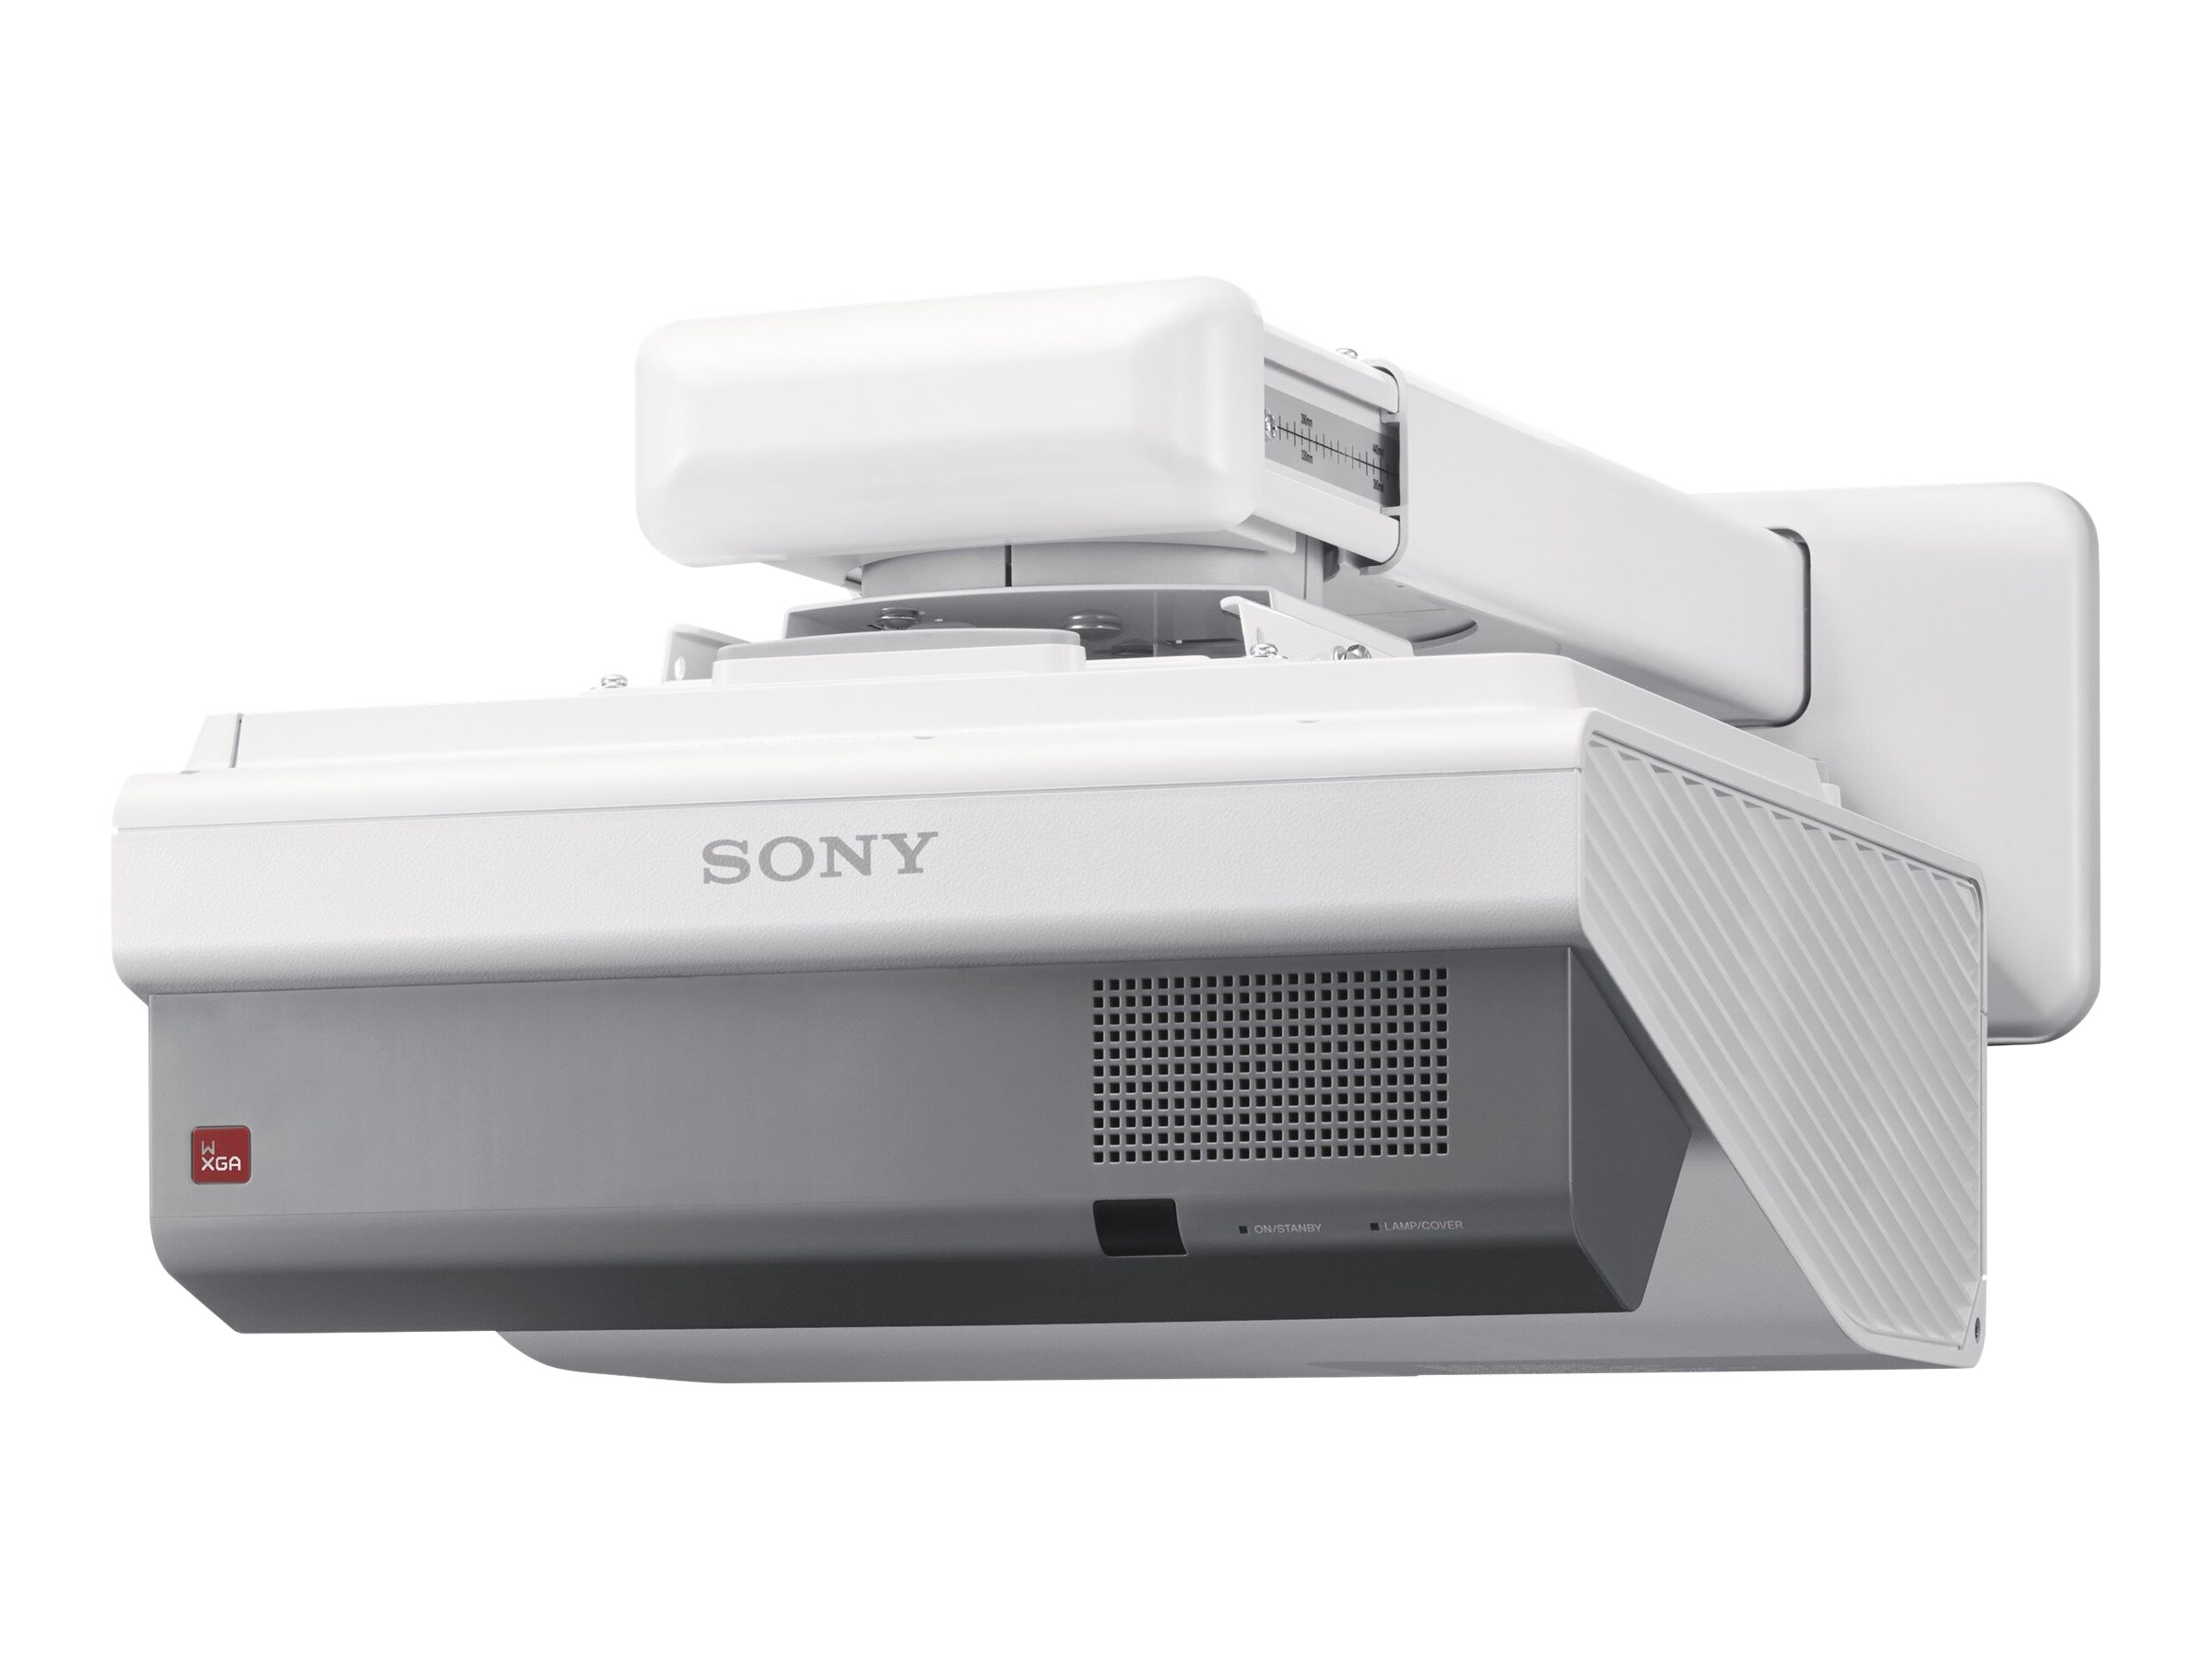 Sony VPL-SW631 - 3LCD projector - ultra short-throw - LAN - with wall mount